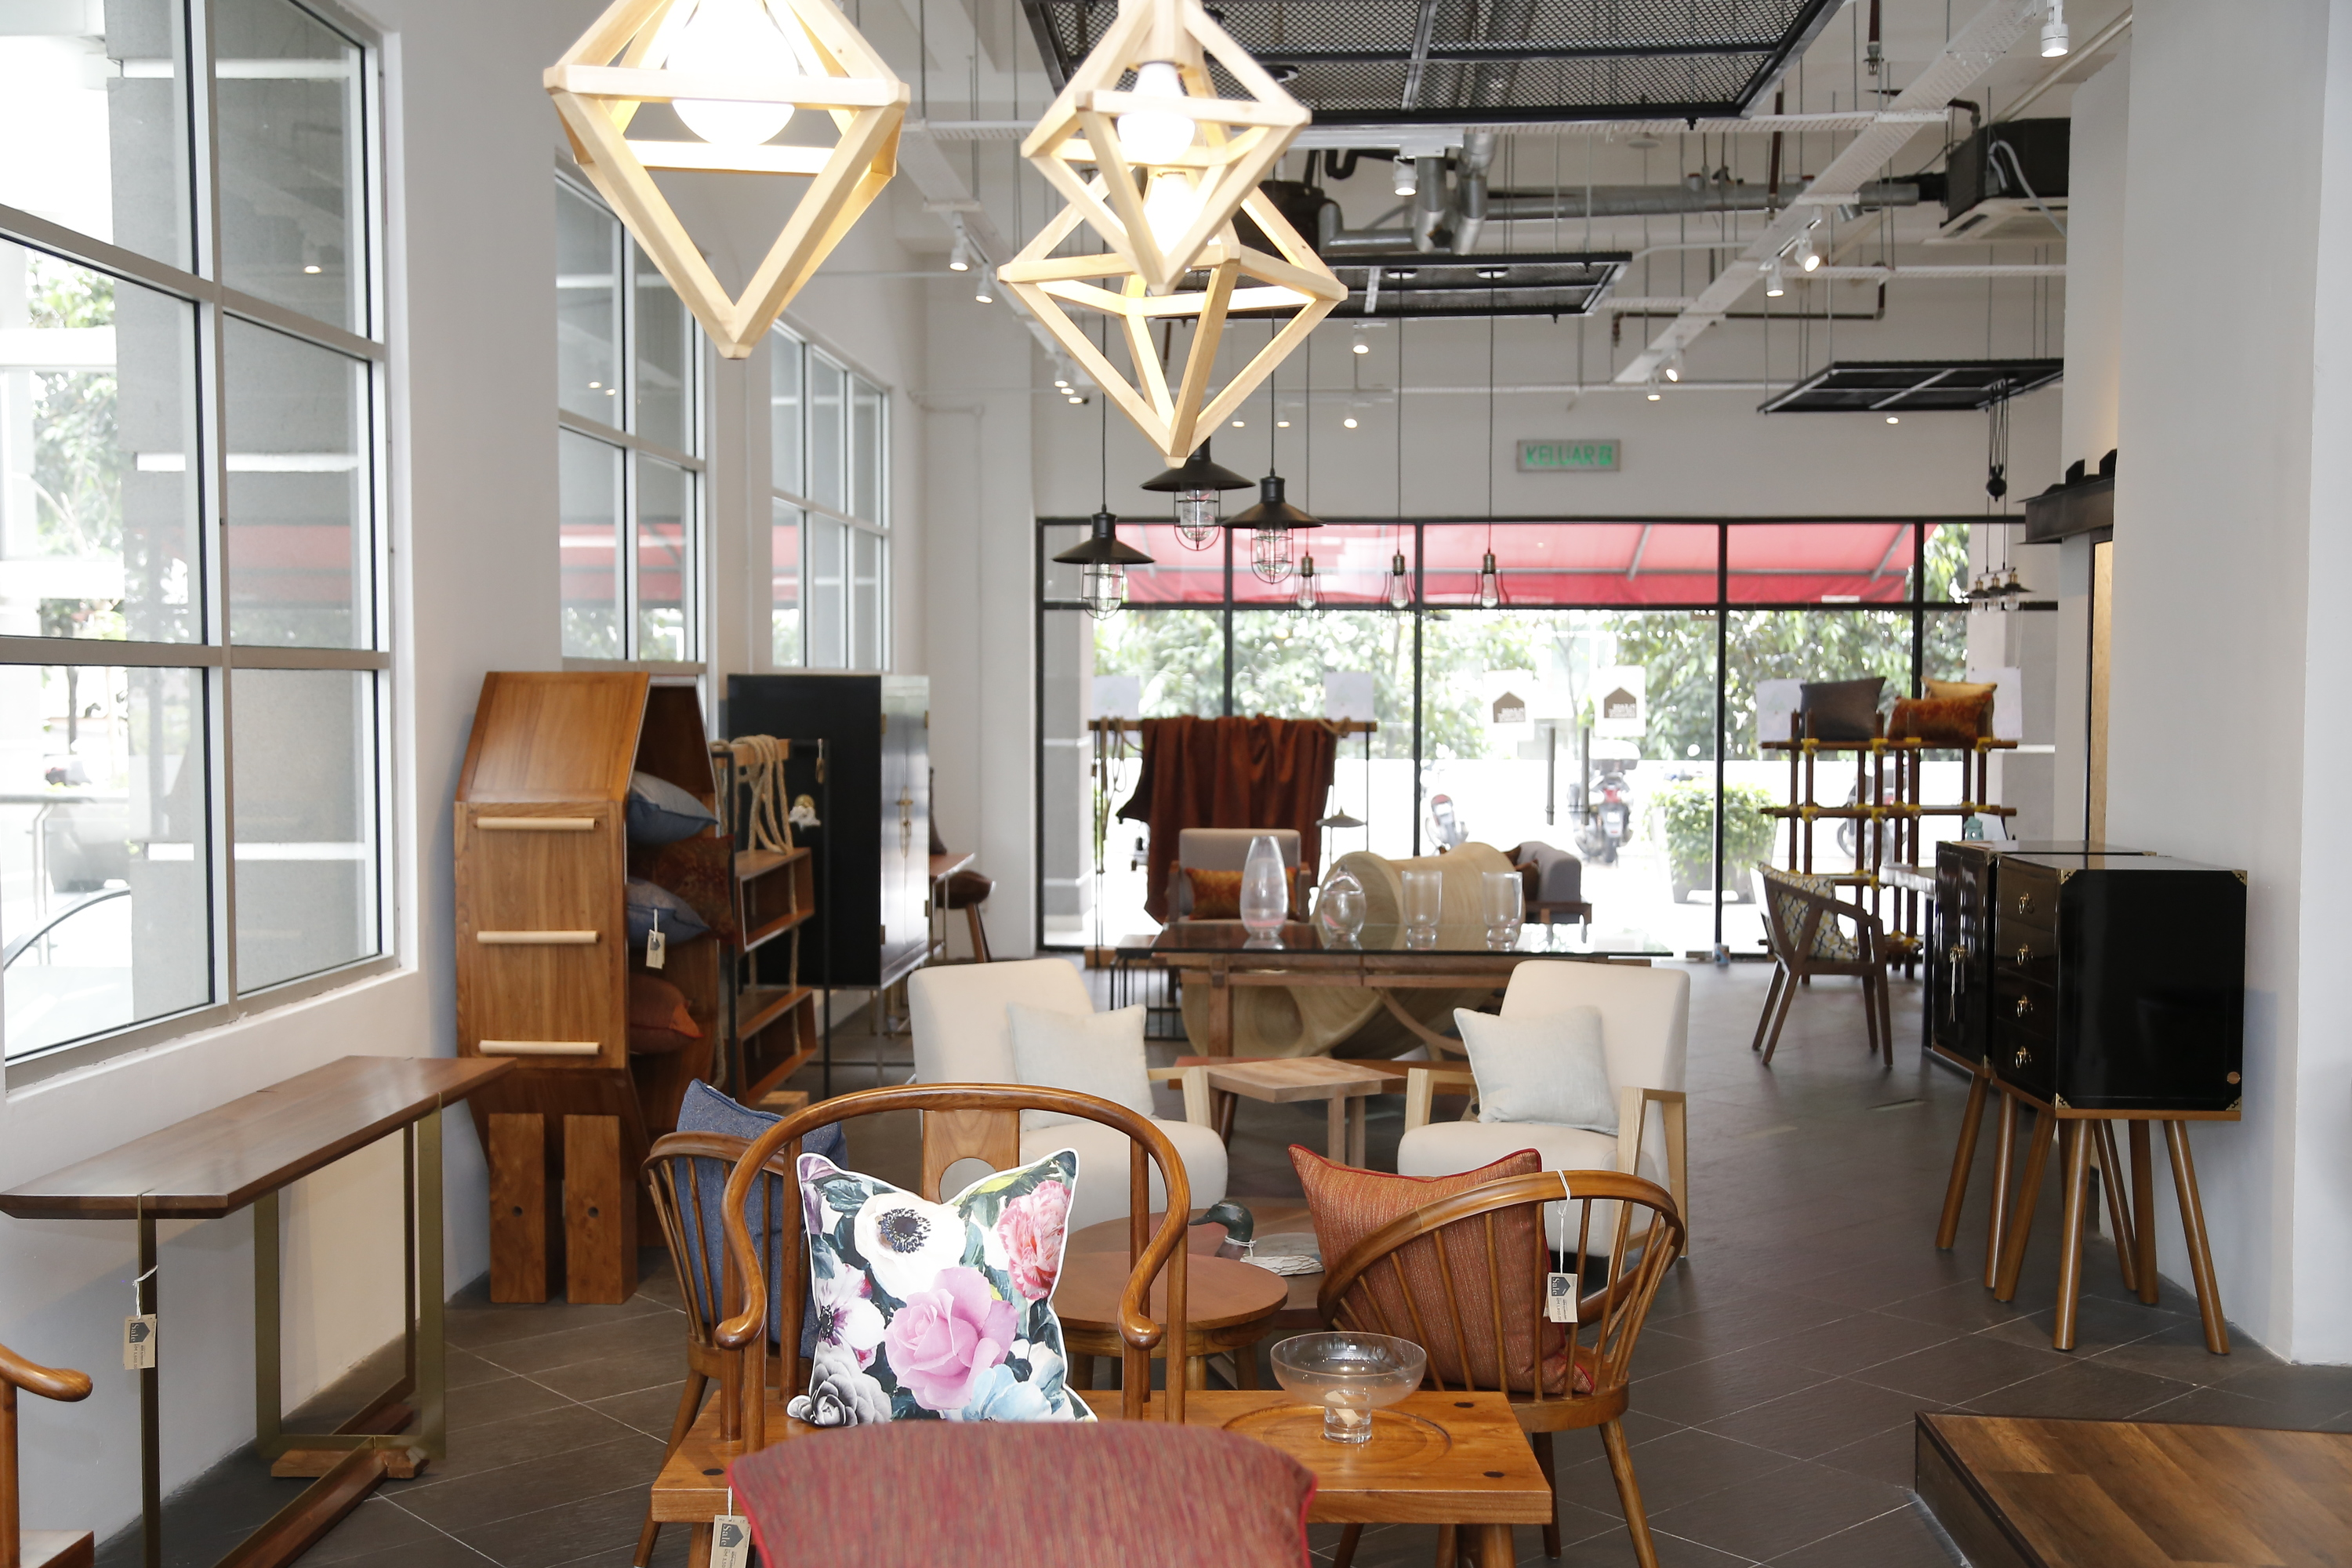 The best furniture and home decor stores in kl for Home decor and furniture